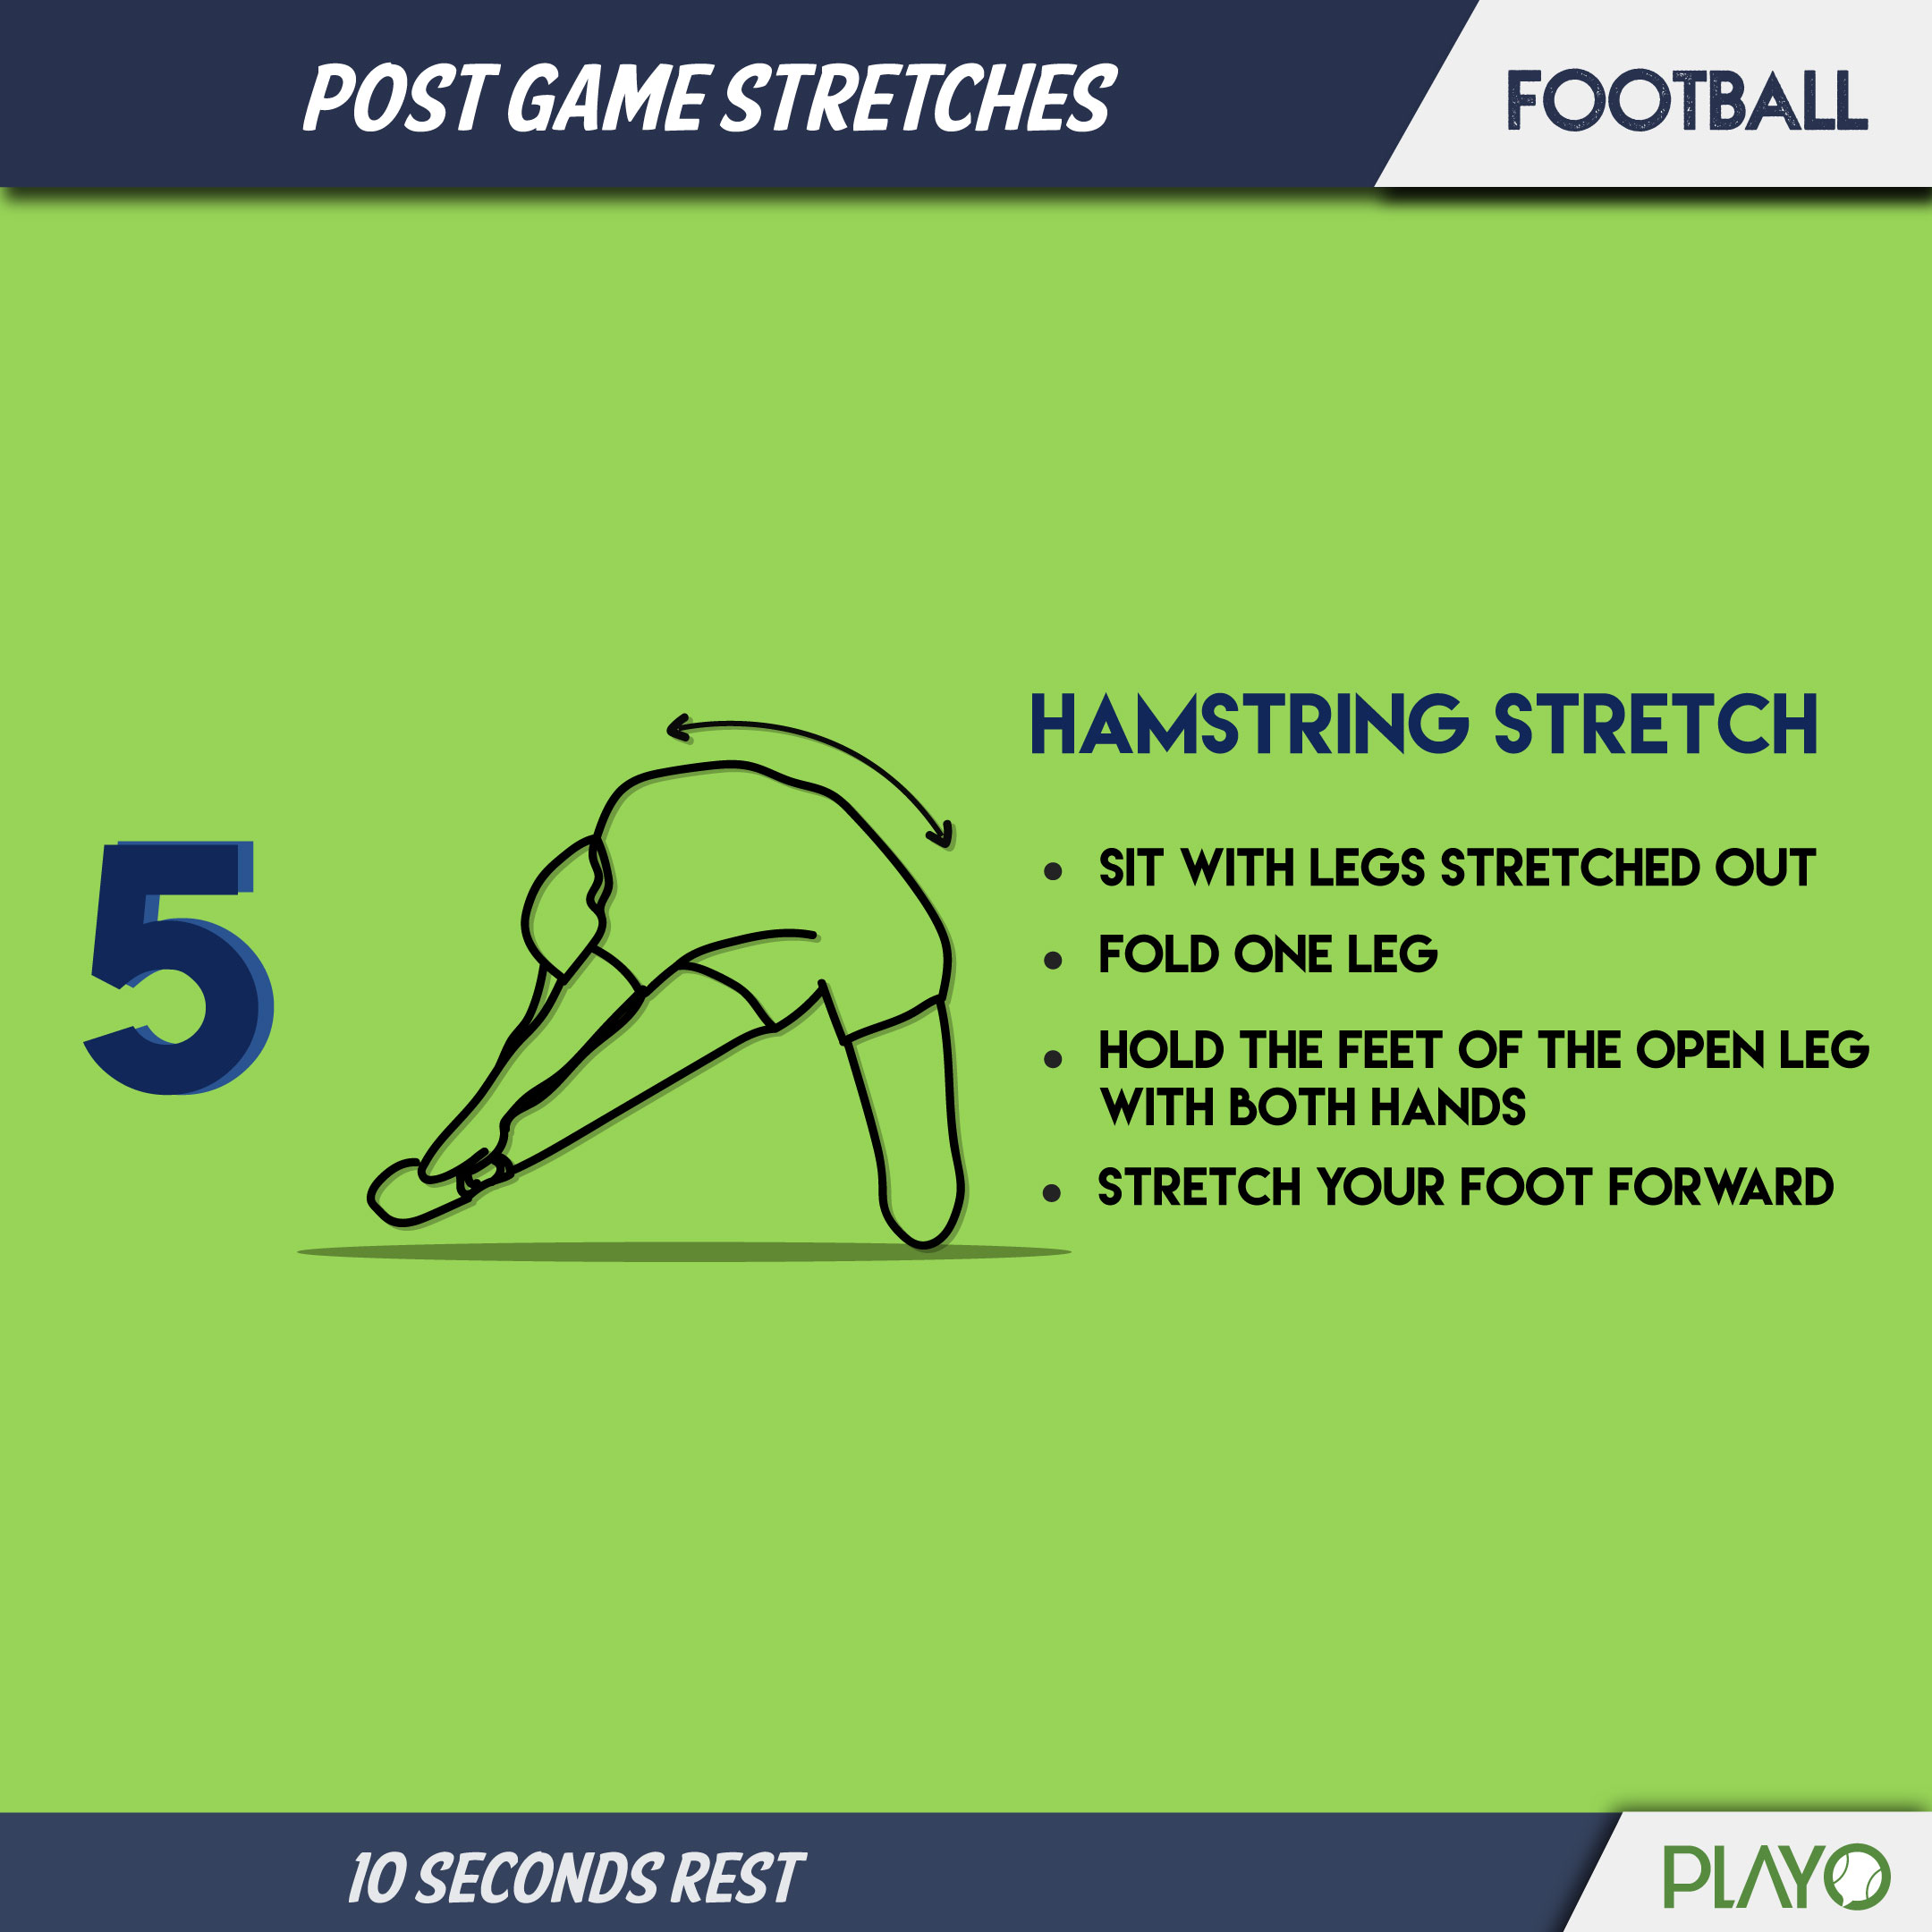 Hamstring stretch to cool you down after football